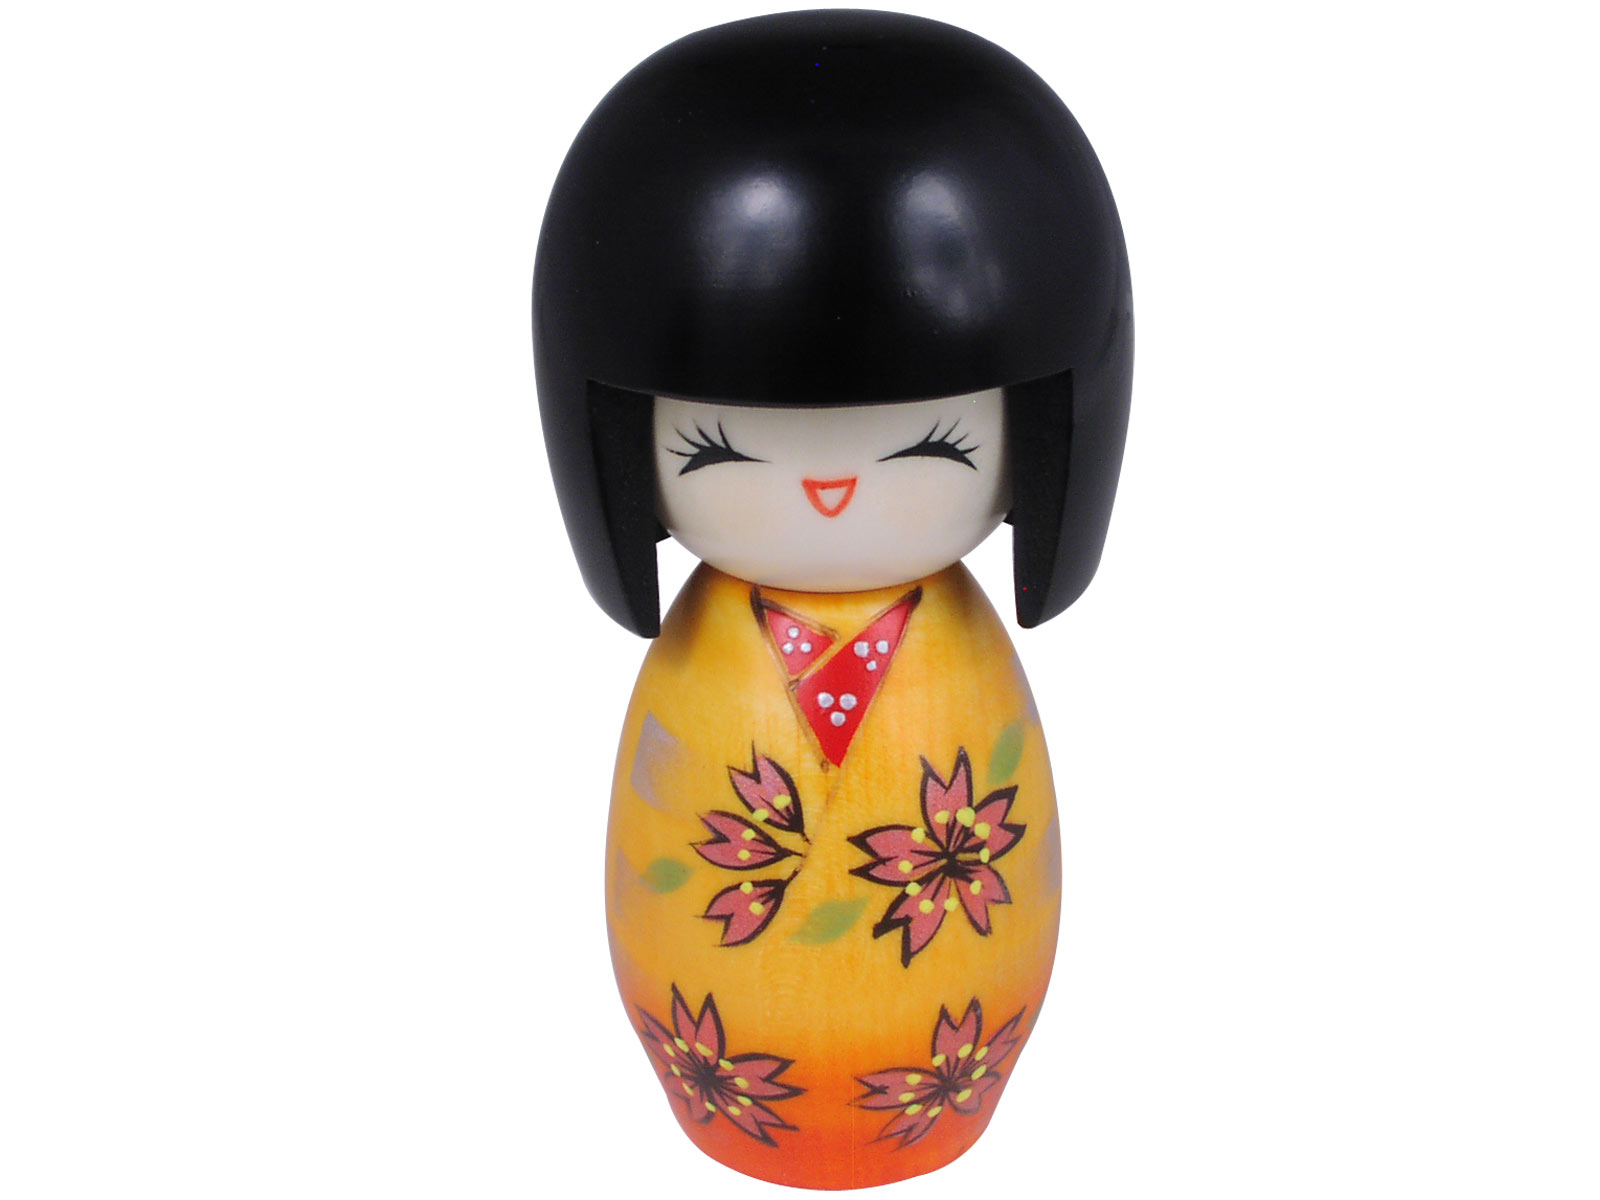 Laughing and Festive Orange Yukata with Cherry Blossoms Kokeshi Doll